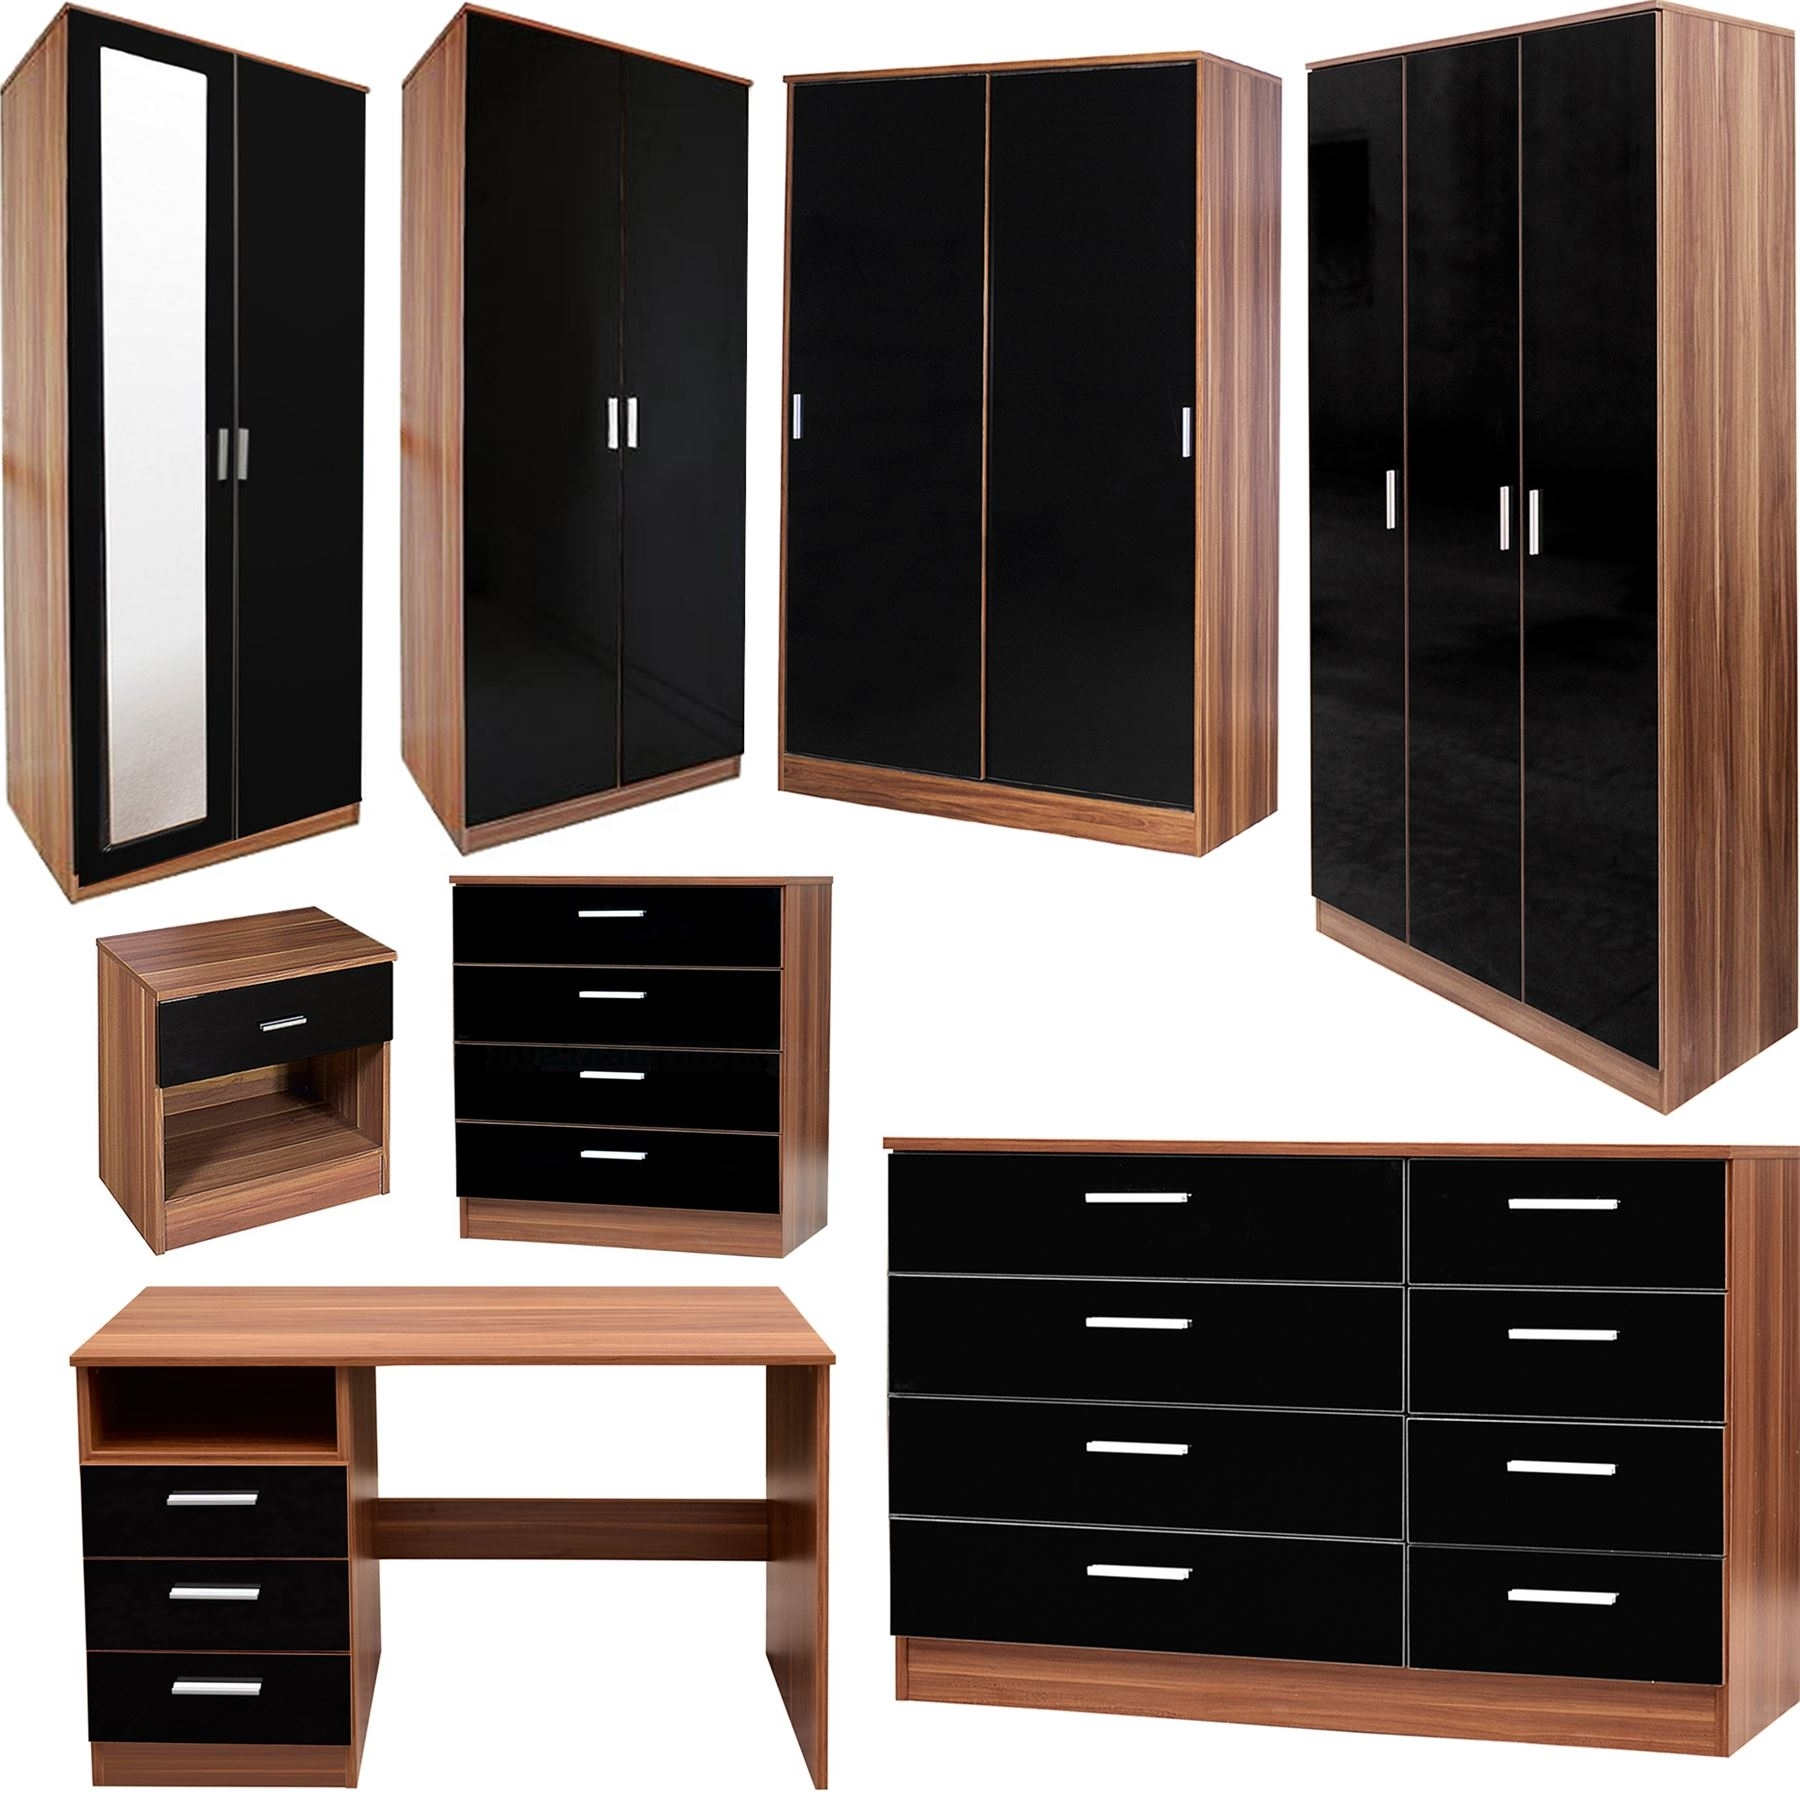 Black High Gloss Wardrobes Throughout Most Recently Released Bedroom Furniture 3 Piece Set Black Gloss & Walnut Wardrobe (View 4 of 15)